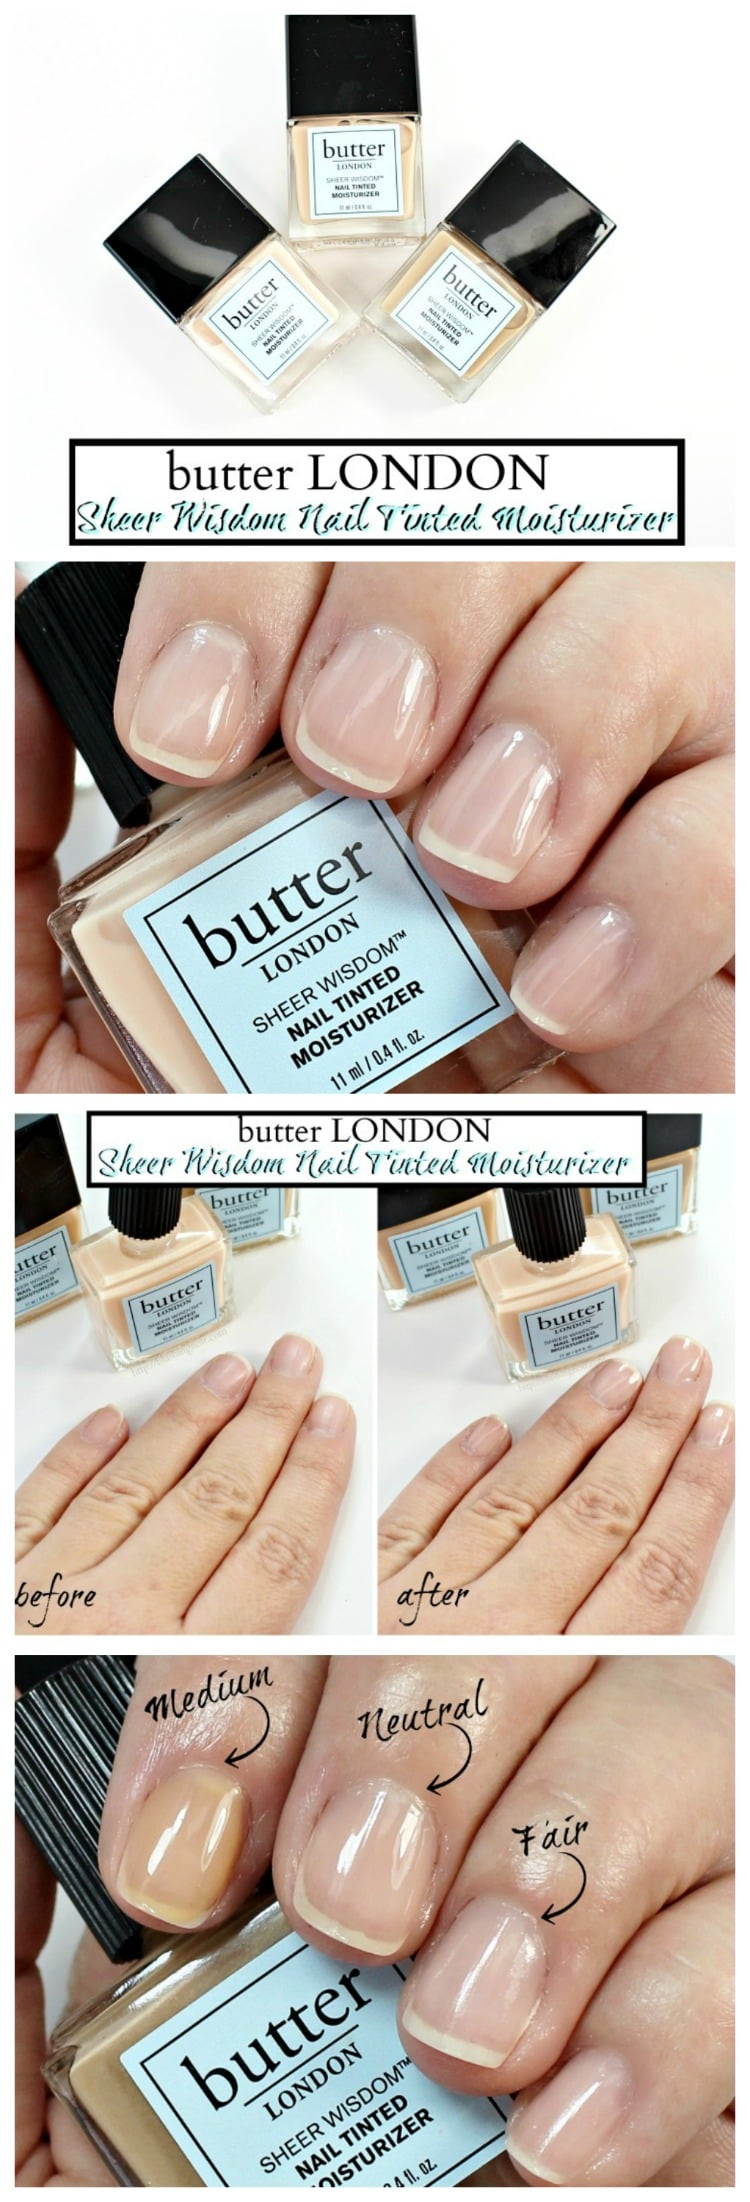 butter LONDON Sheer Wisdom Nail Tinted Moisturizer swatches review photos how to